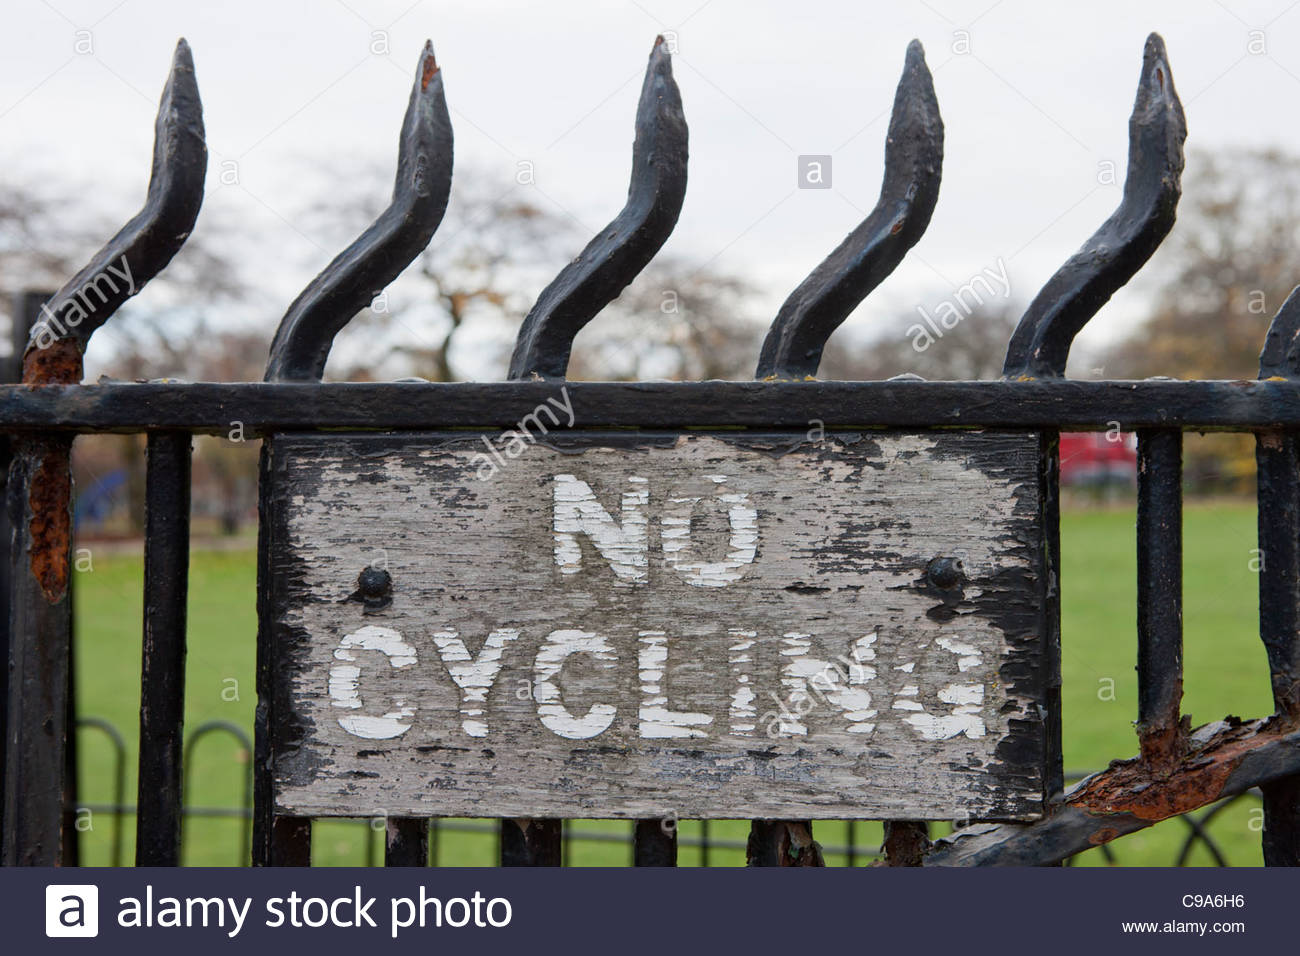 No Cycling sign Worn and faded Highfields Park, Beeston, Nottingham - Stock Image